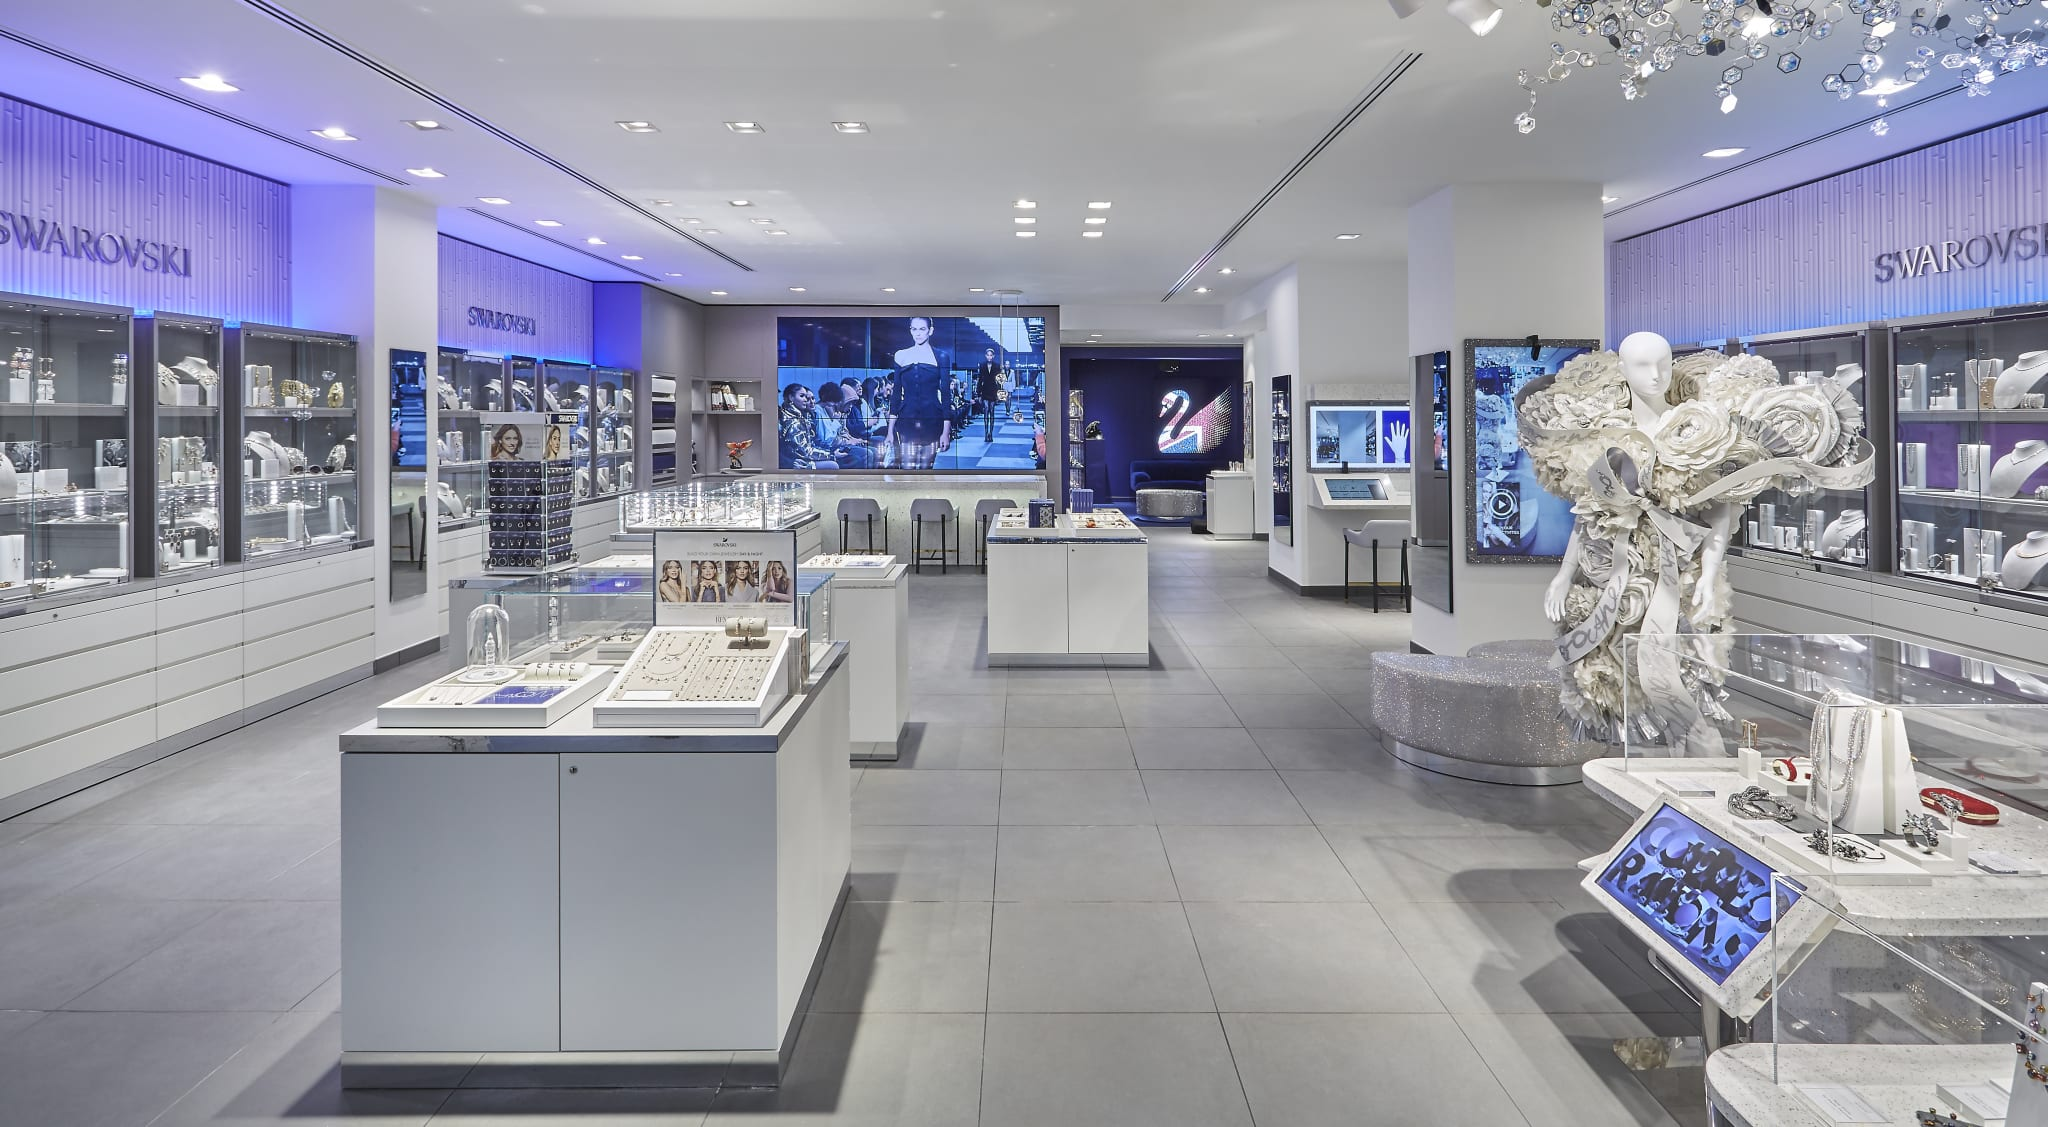 THE BIG INTERVIEW: Swarovski will do whatever it takes to put the customer first